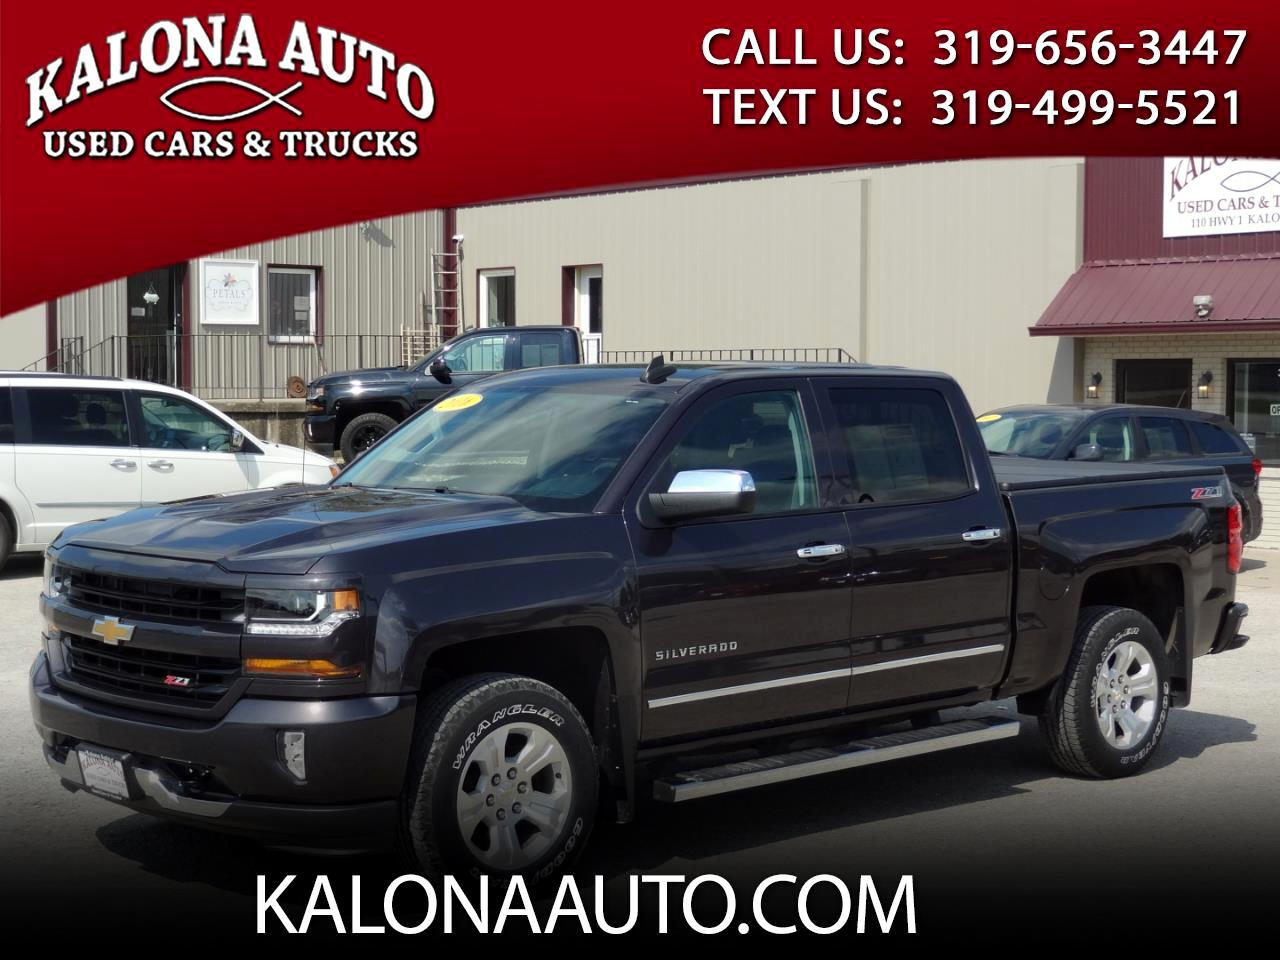 Used Trucks For Sale In Iowa >> Used Cars For Sale Kalona Ia 52247 Kalona Auto Used Cars Trucks